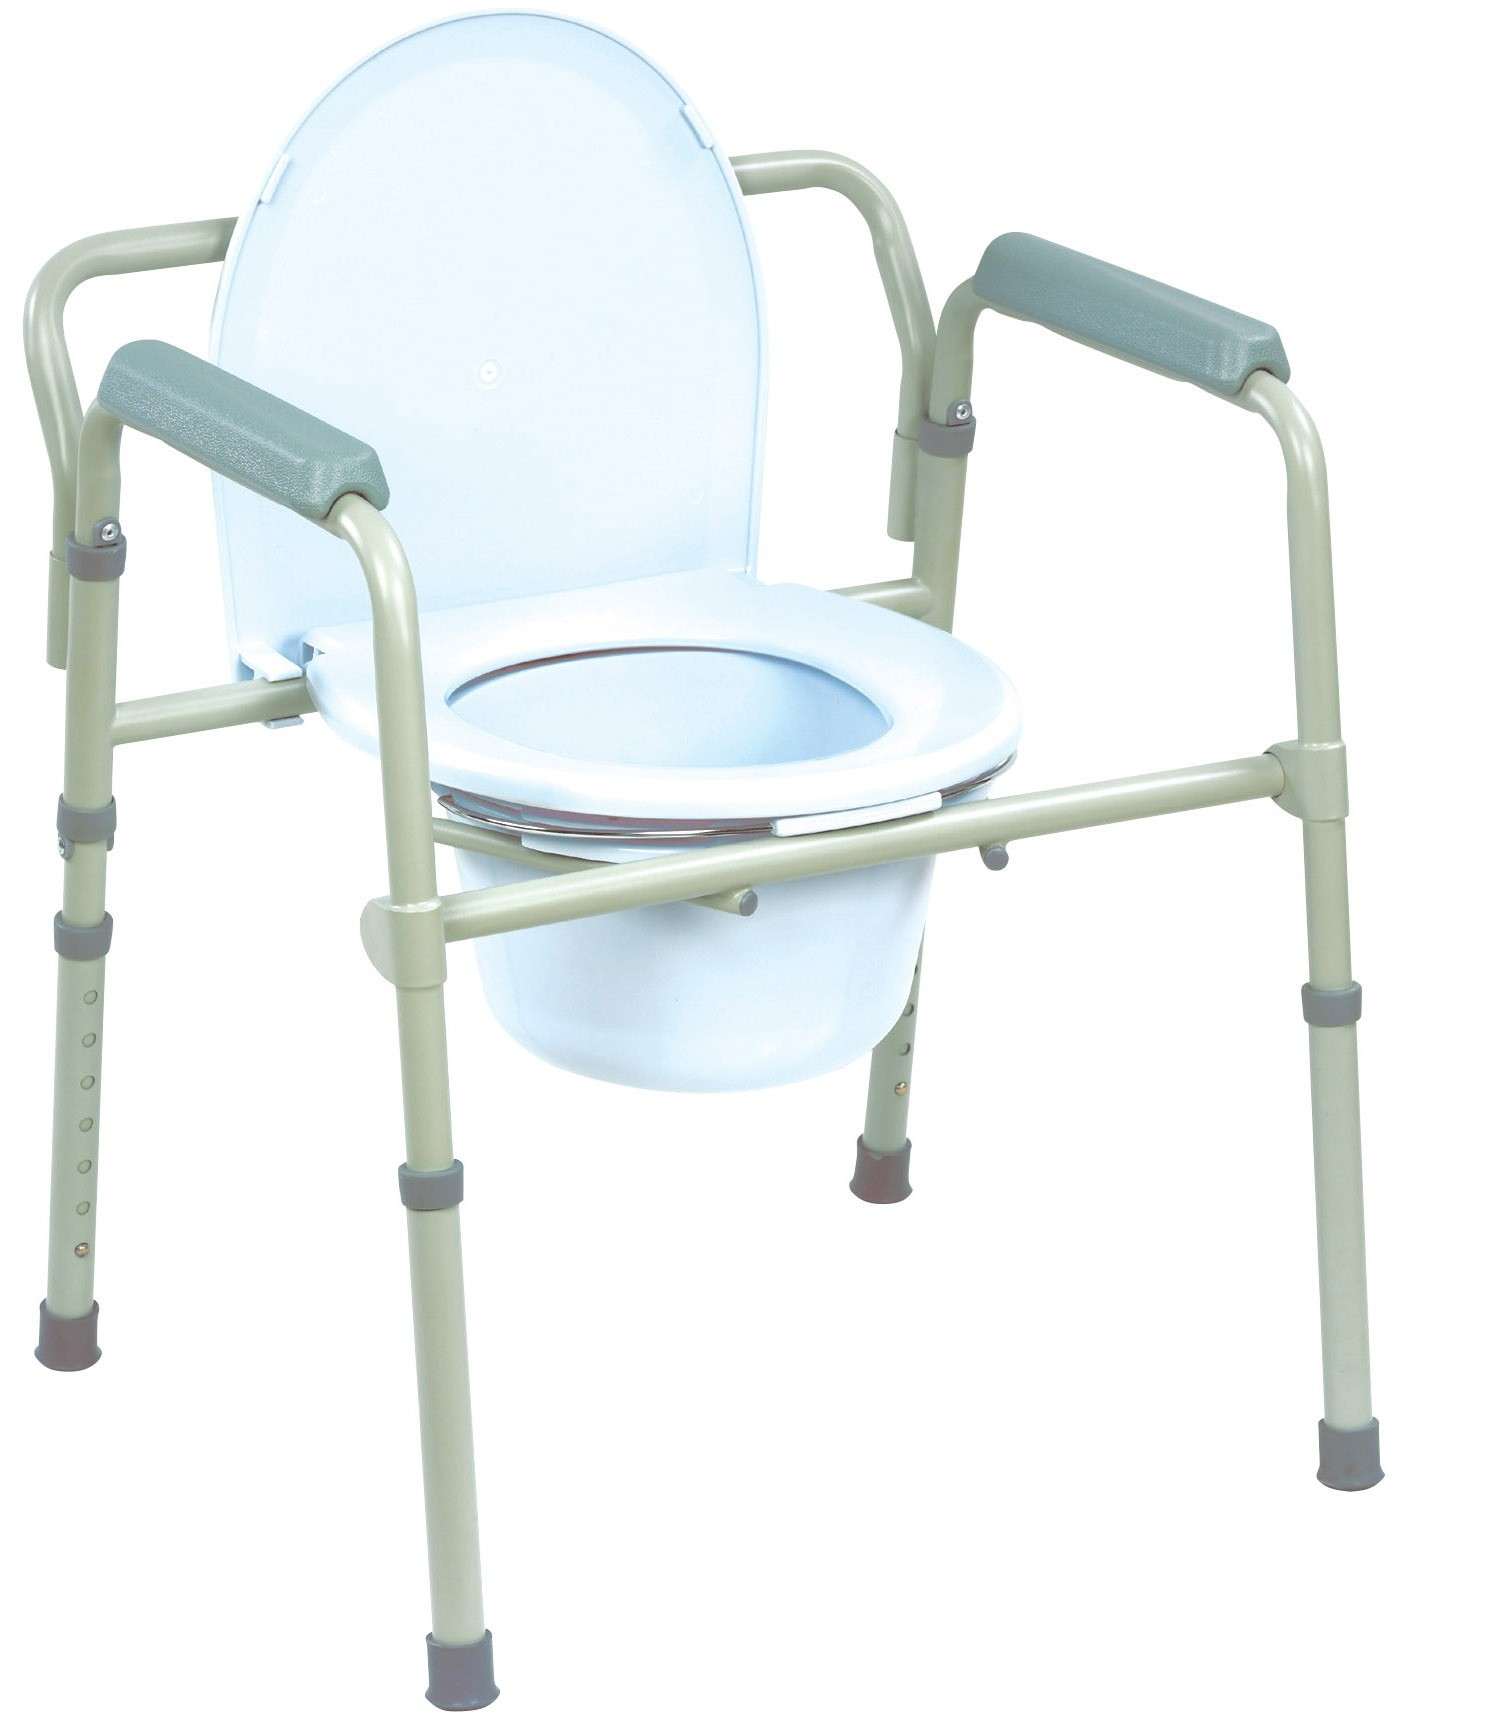 Commodes at Lowes | Lowes Bathroom Faucets | Toilet Seat Risers